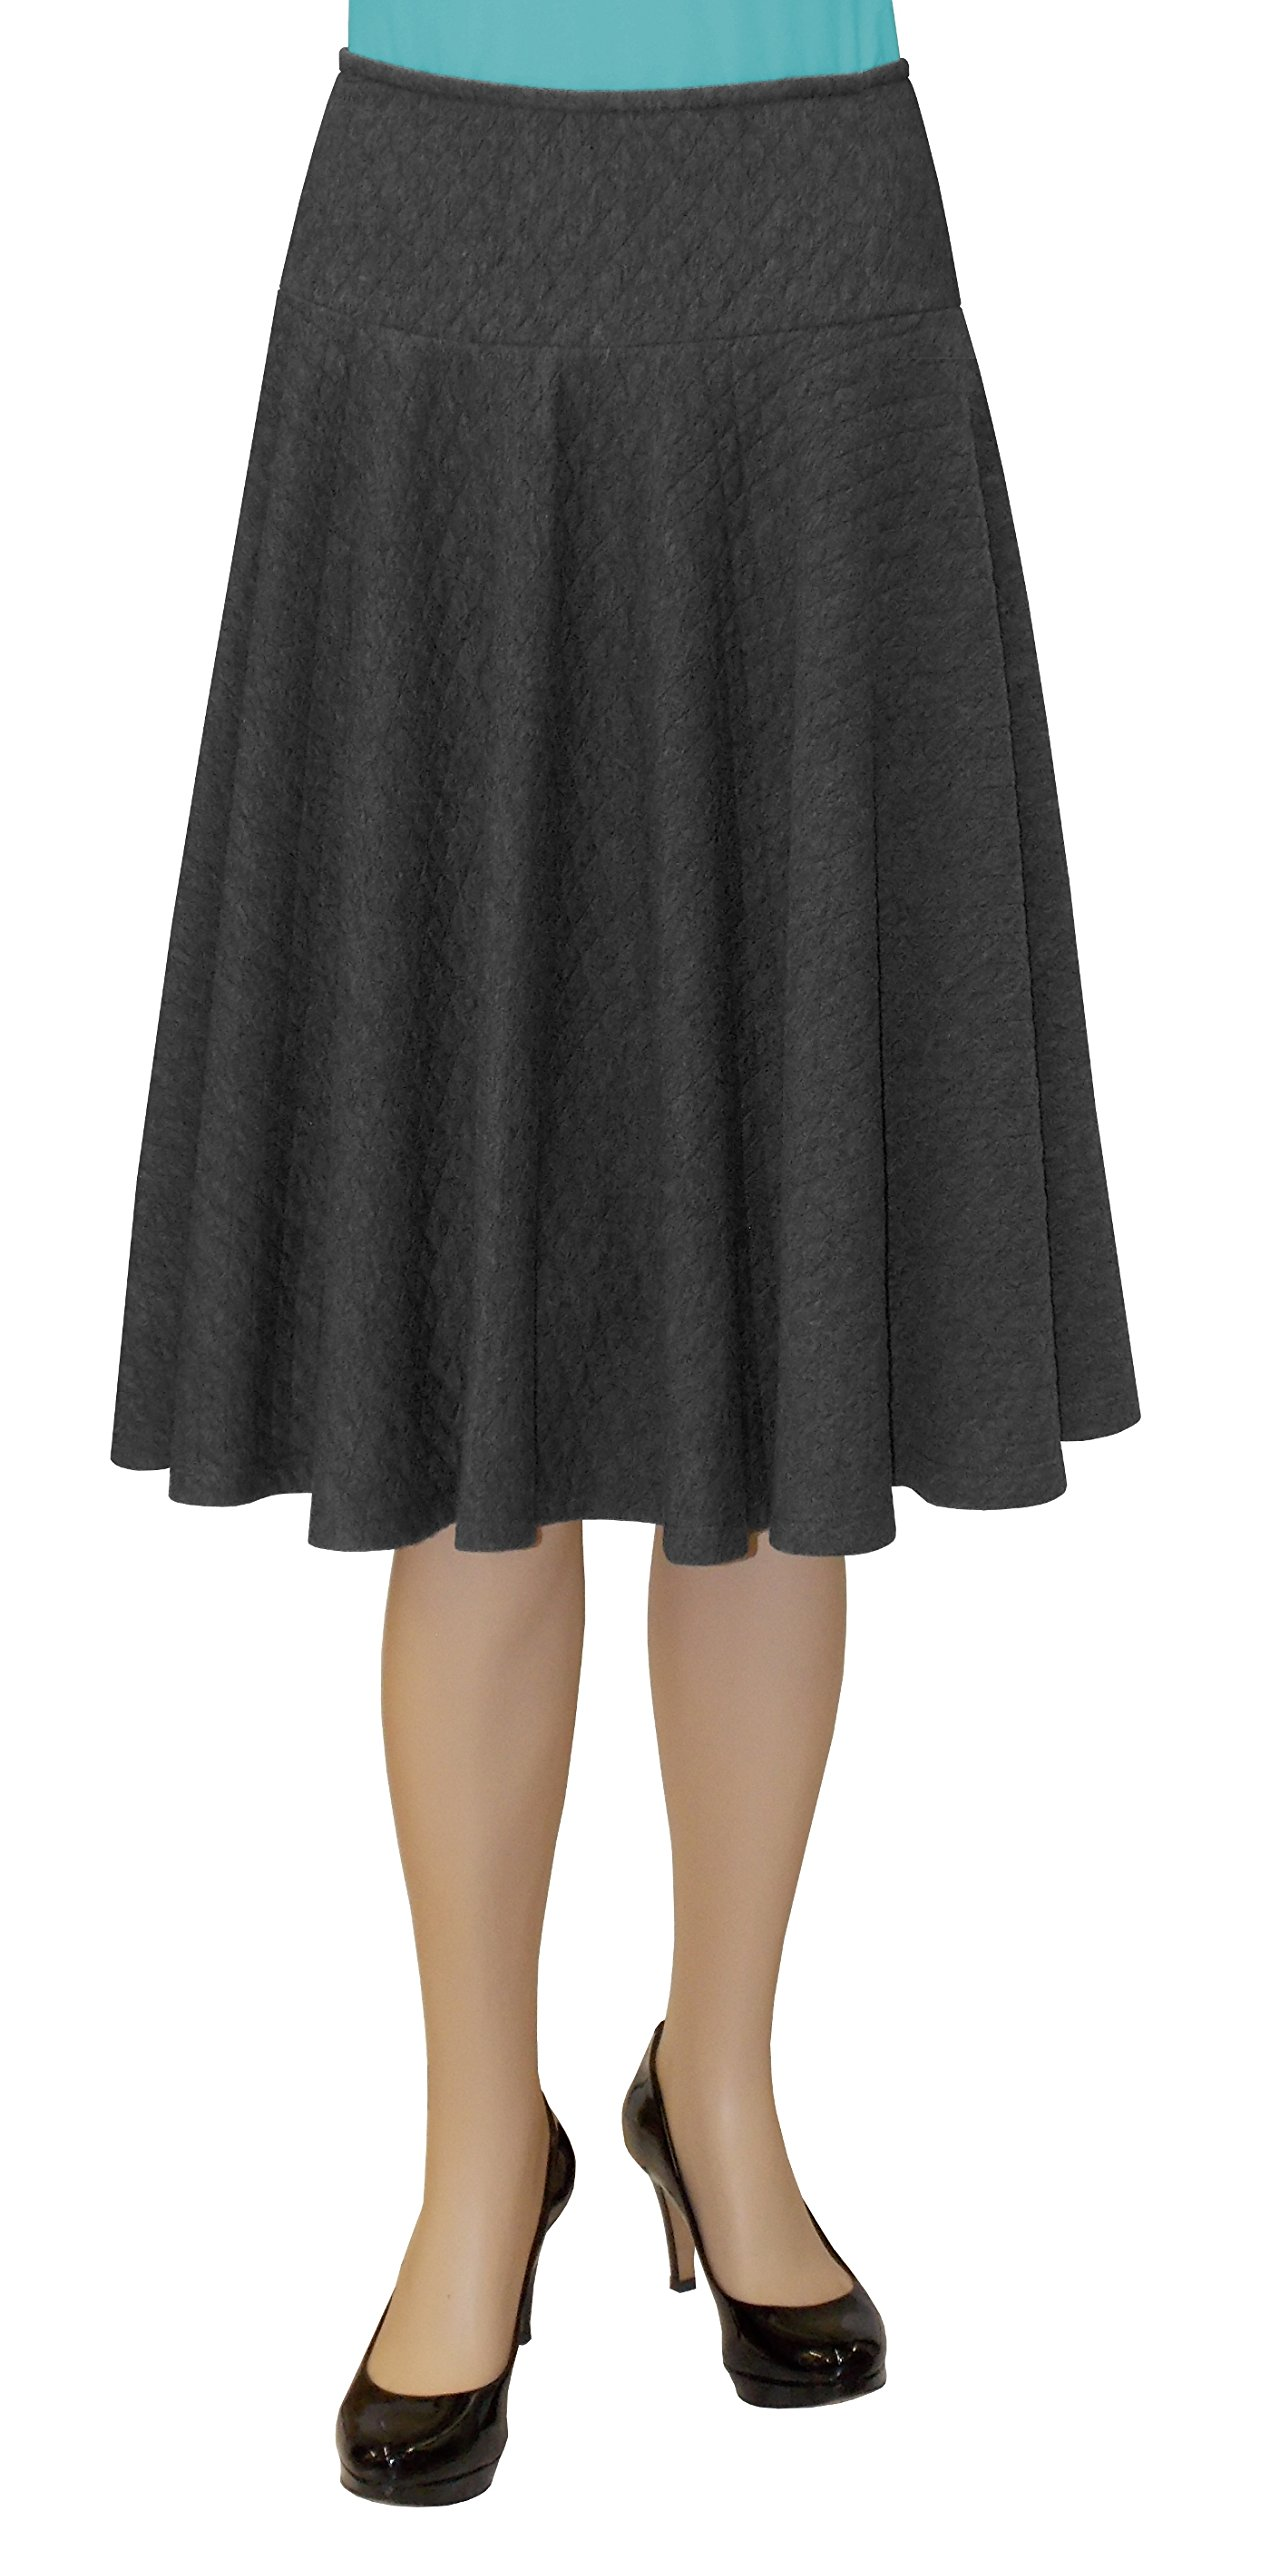 Baby'O Women's Below the Knee Midi Length Fit and Flare Diamond Pattern Quilted Knit Cirlce Skater Skirt - GRY - L